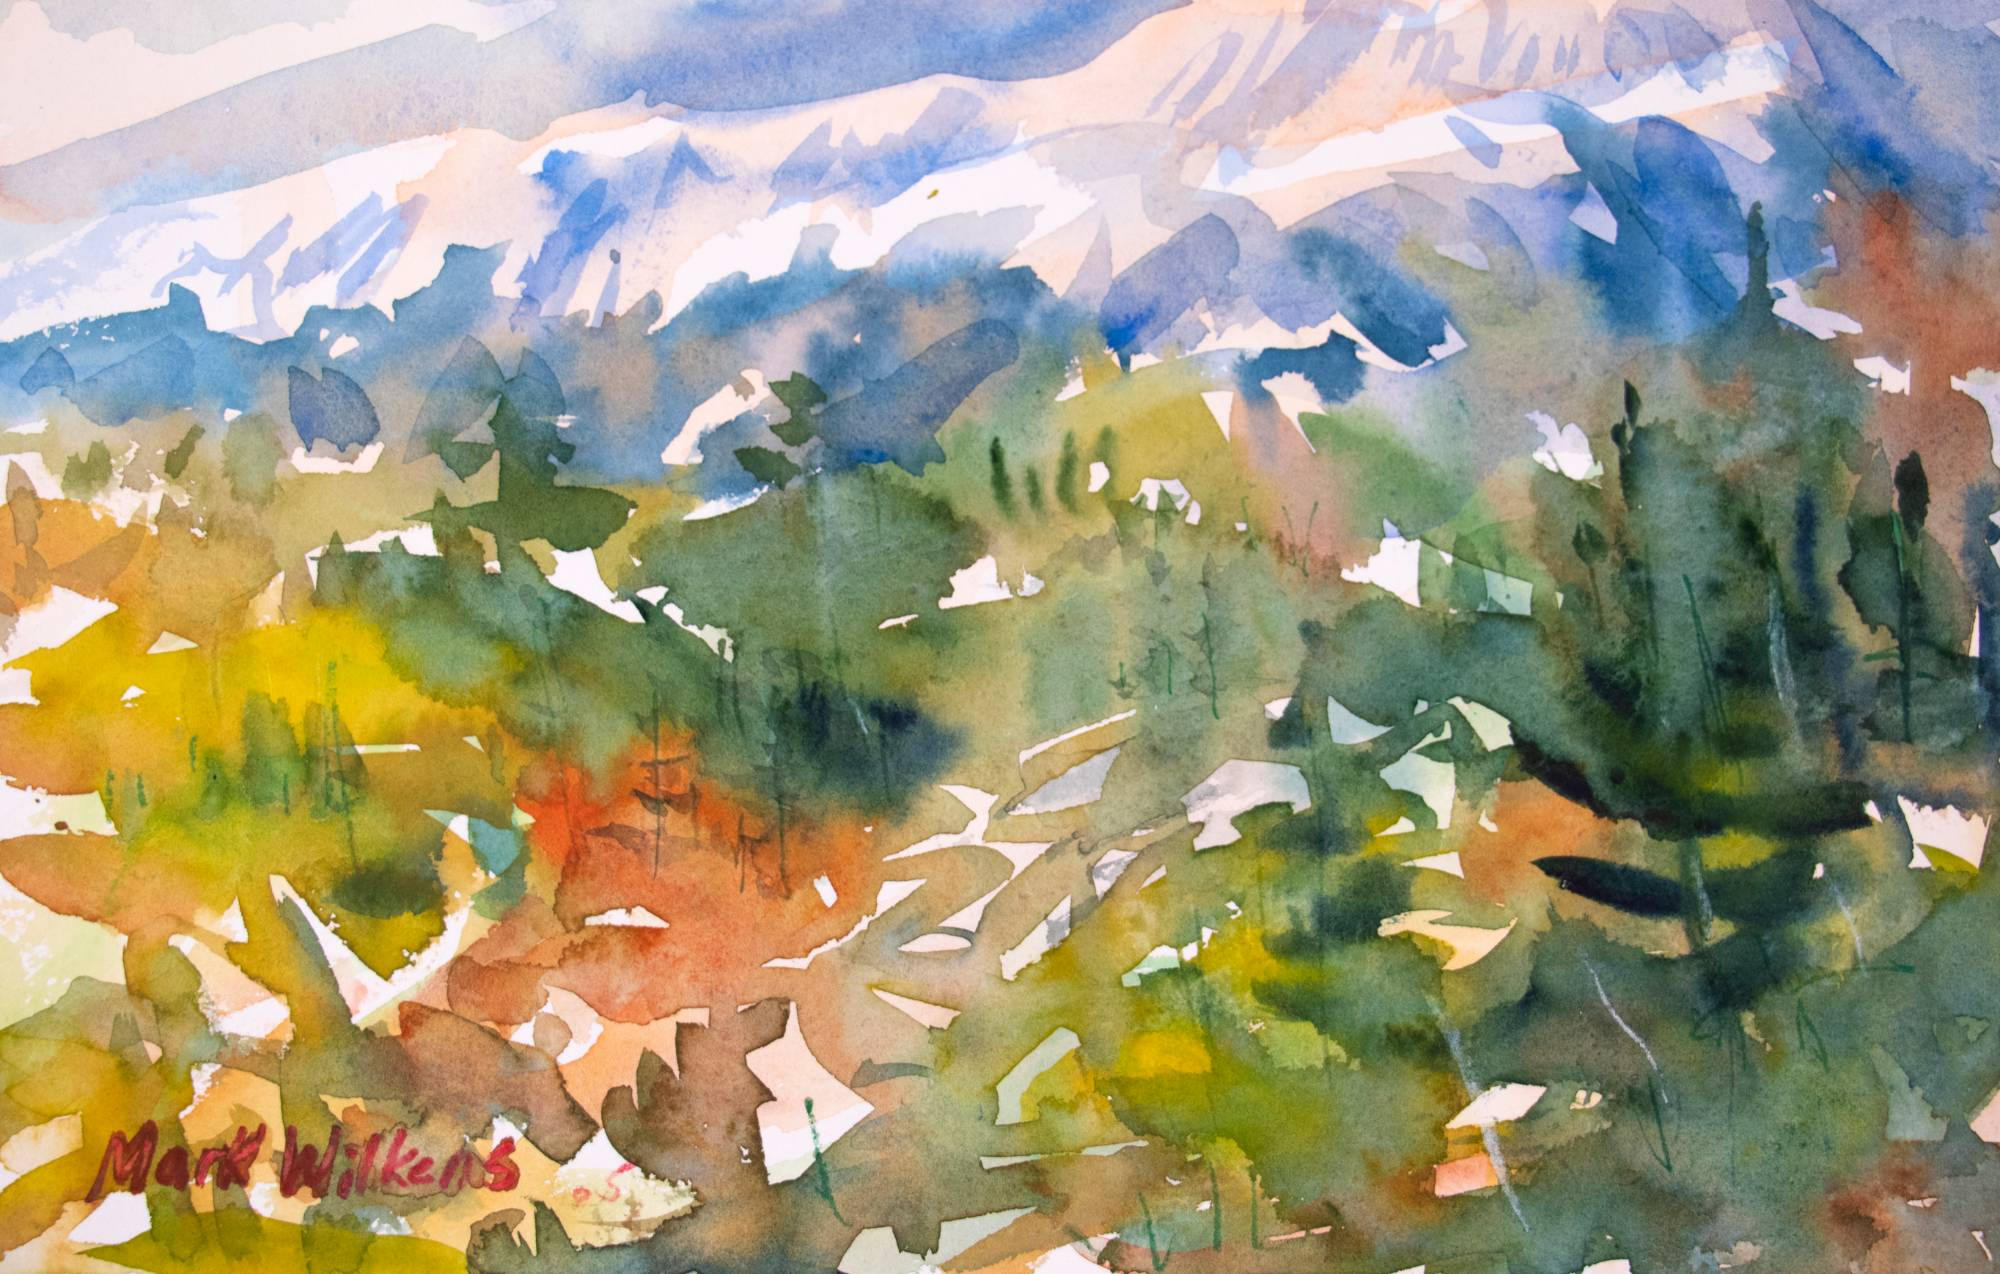 Watercolor art piece of mountains and trees nature scene.